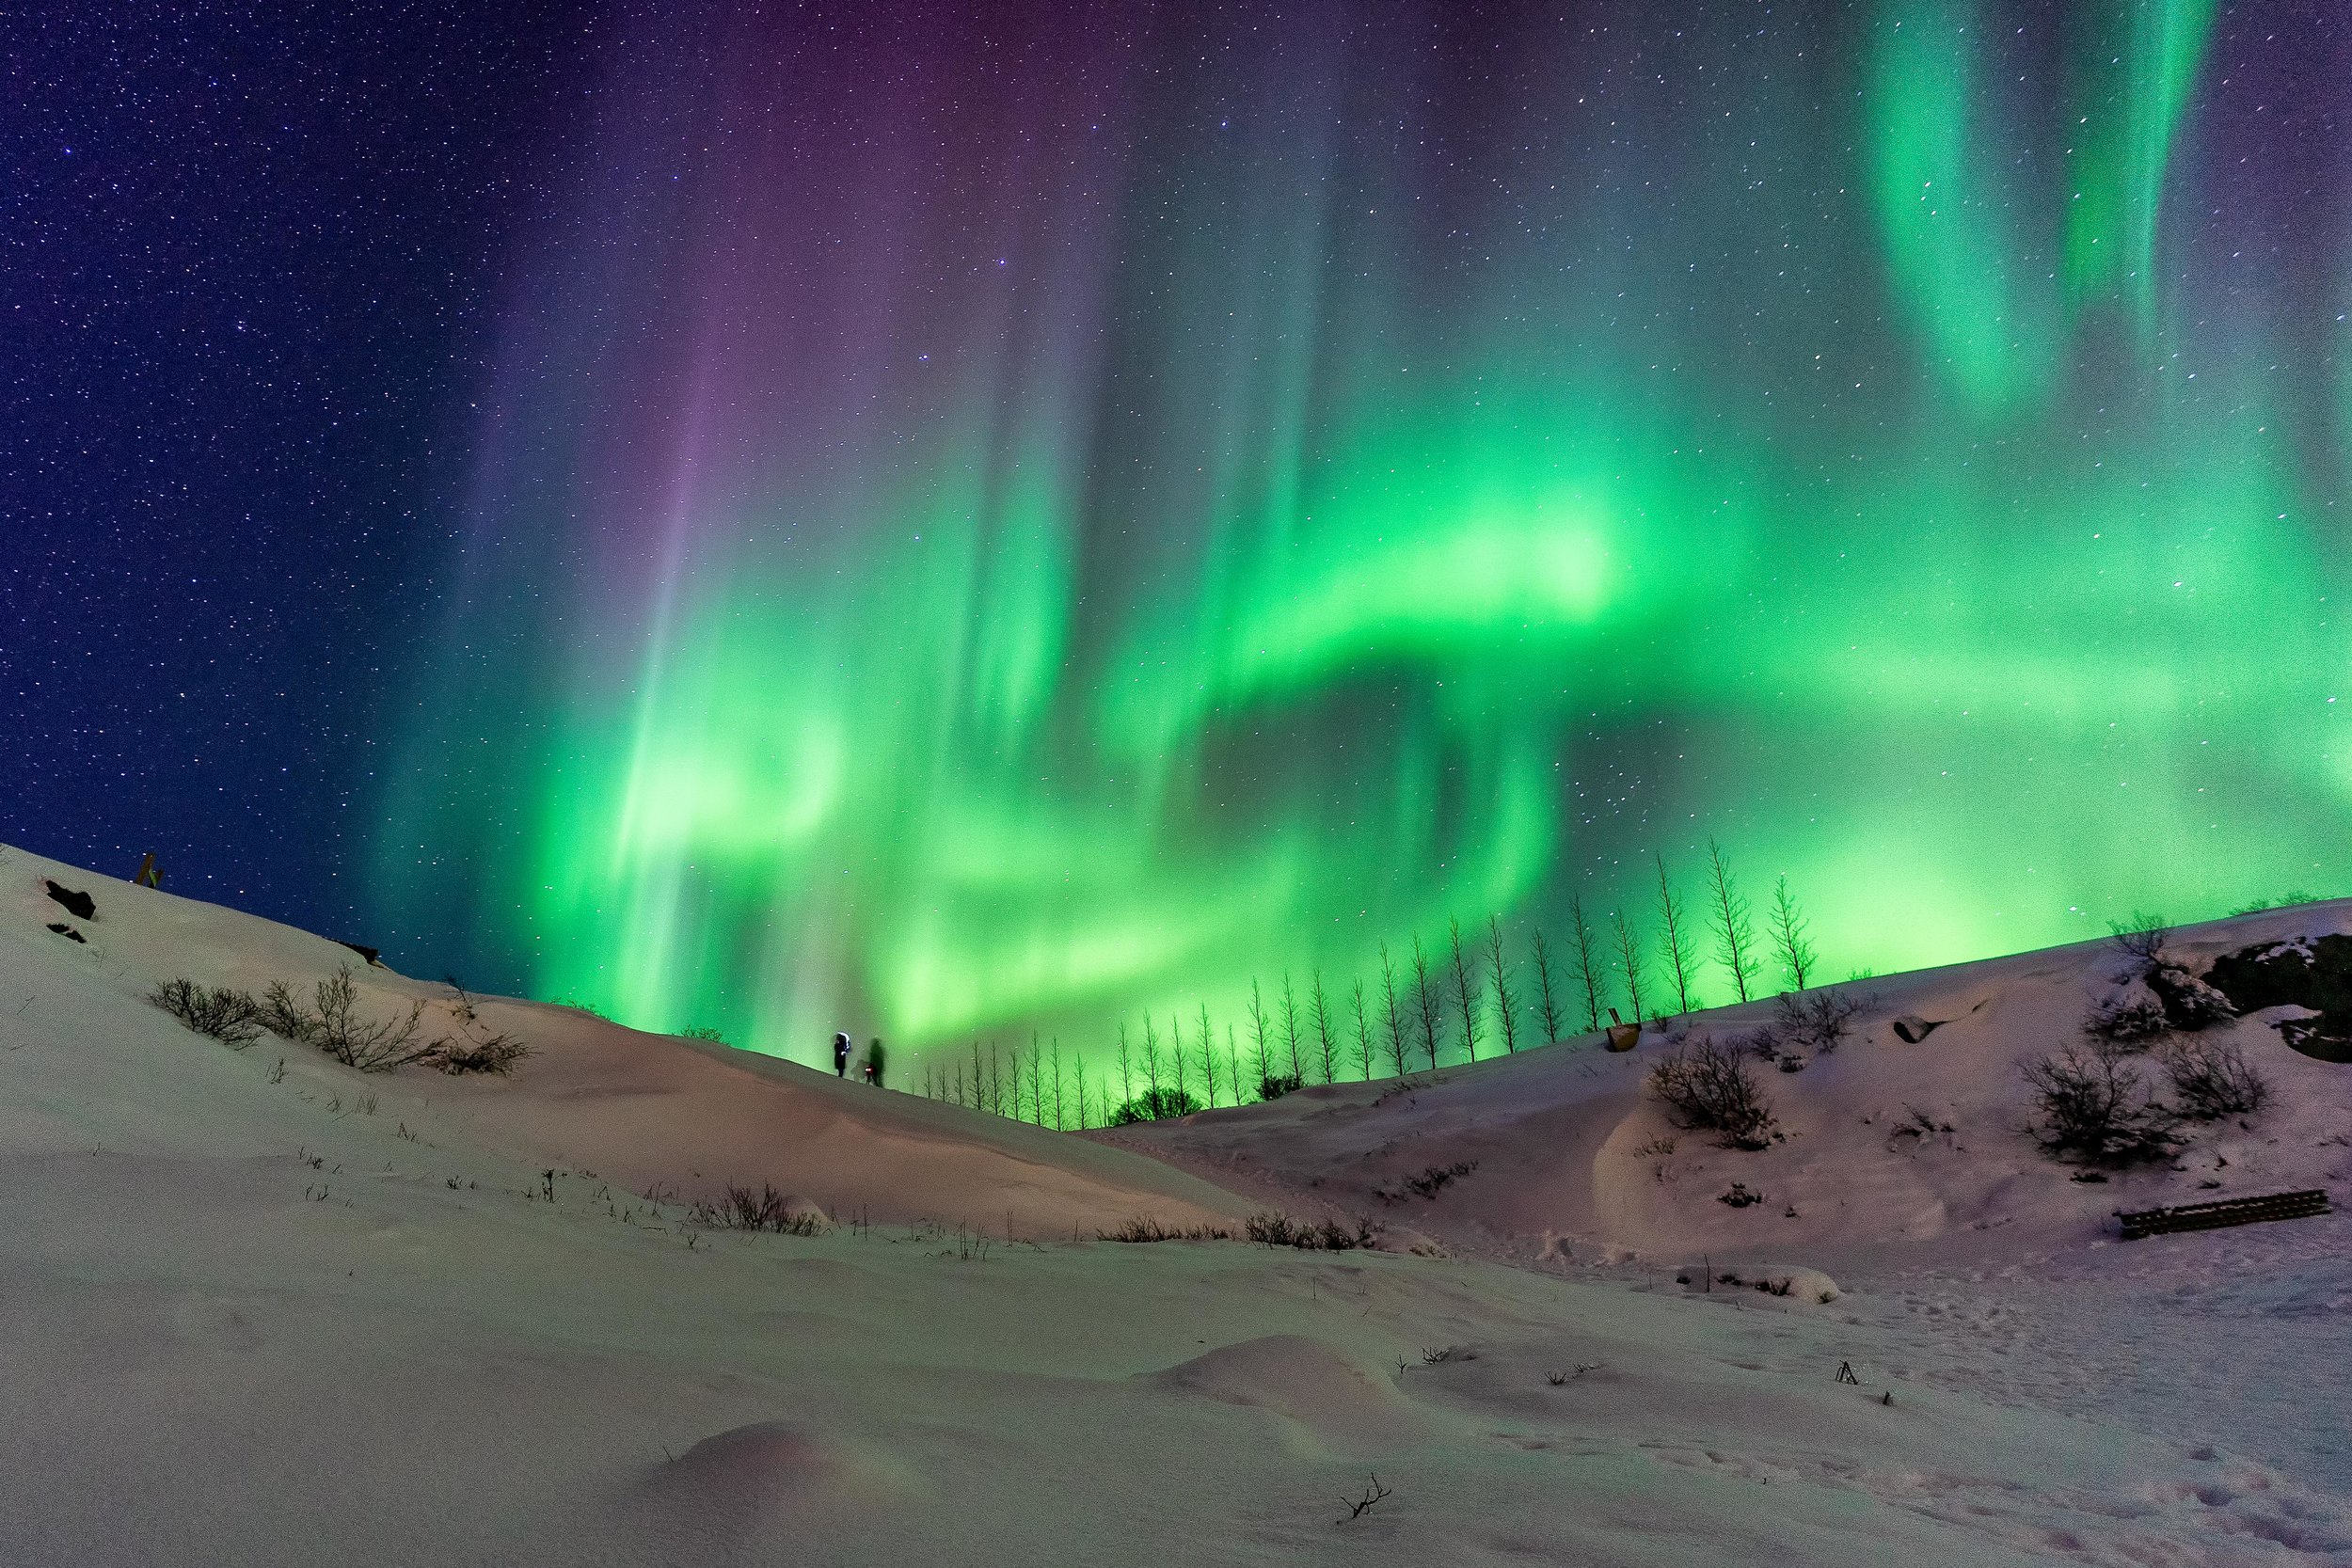 Iceland. snow. travel. adventure. photography. trip. epic landscape. snow. cold. freezing. sunrise. nothern lights. couple underlights.jpg